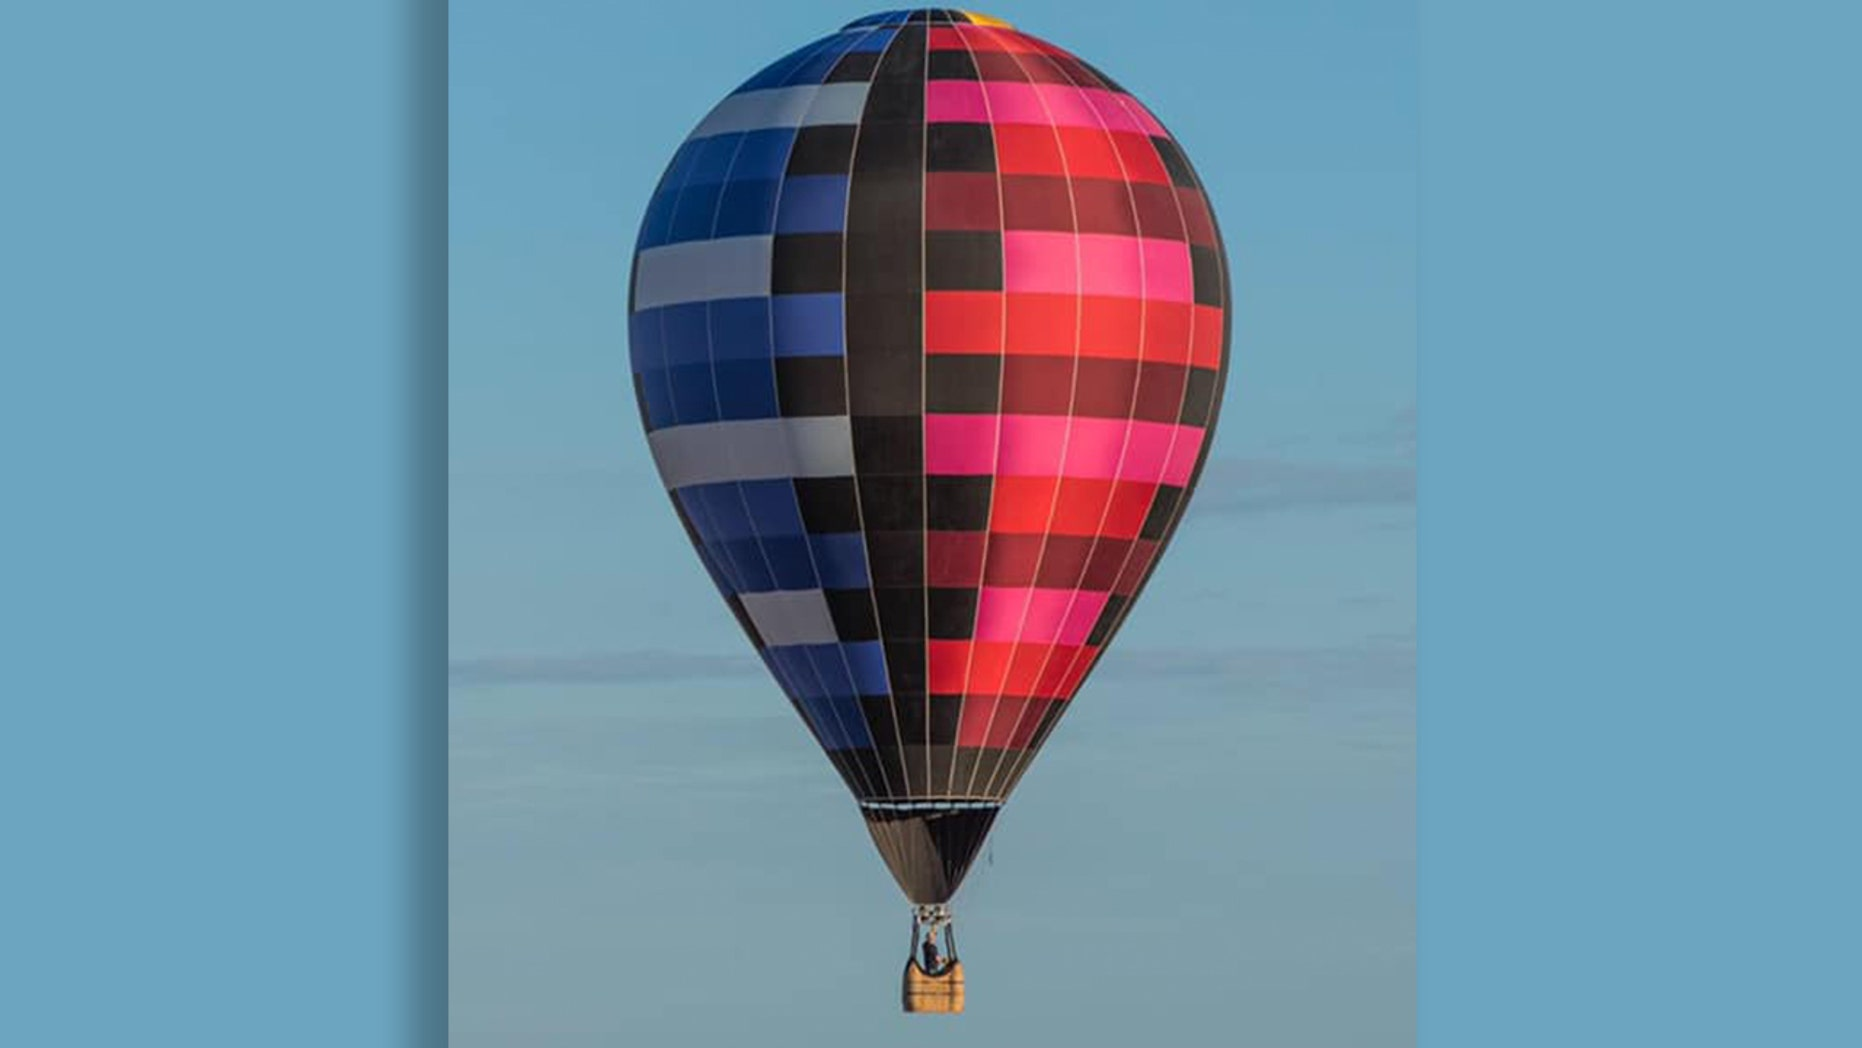 A hot air balloon reported stolen from Indiana was recovered by police in Florida after it was spotted at a hot air balloon festival, according to police.